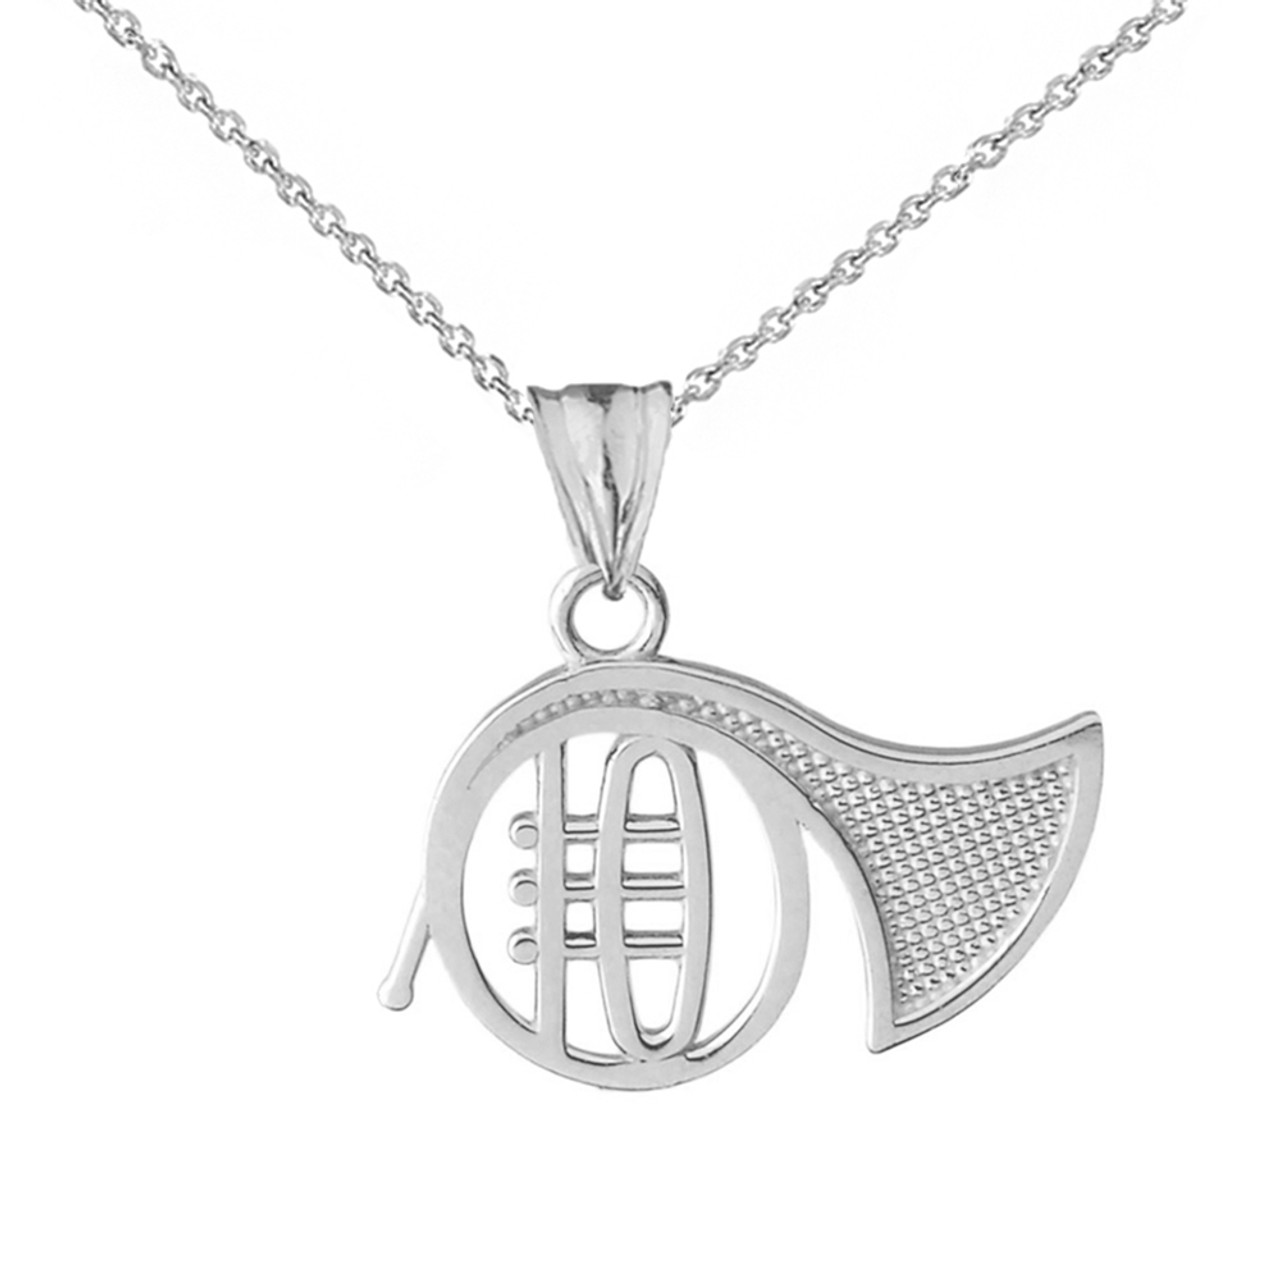 Game control pendant necklace in white gold french horn pendant necklace in white gold mozeypictures Image collections